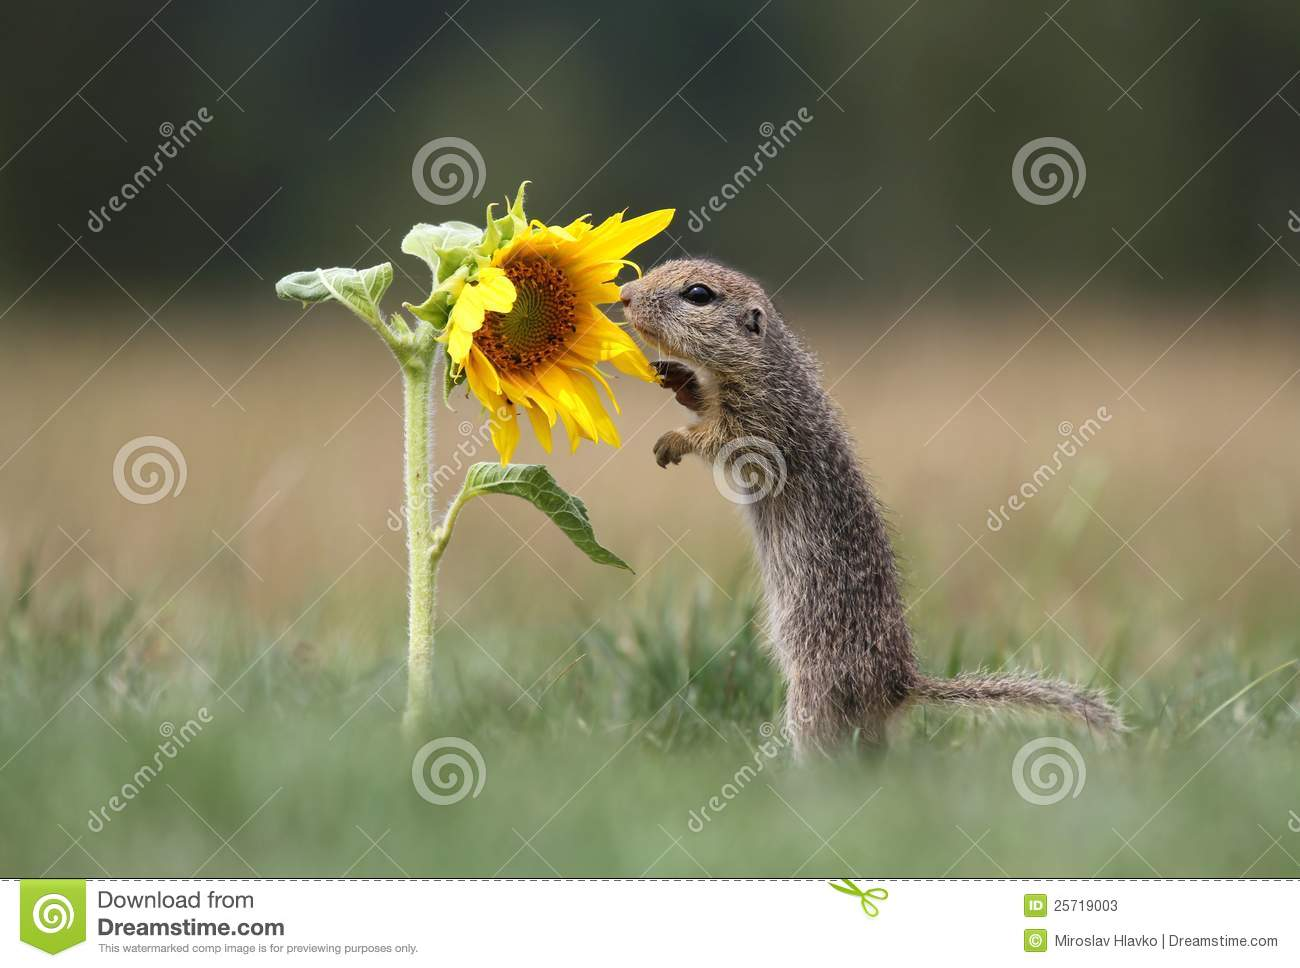 Ground squirrel and sunflower